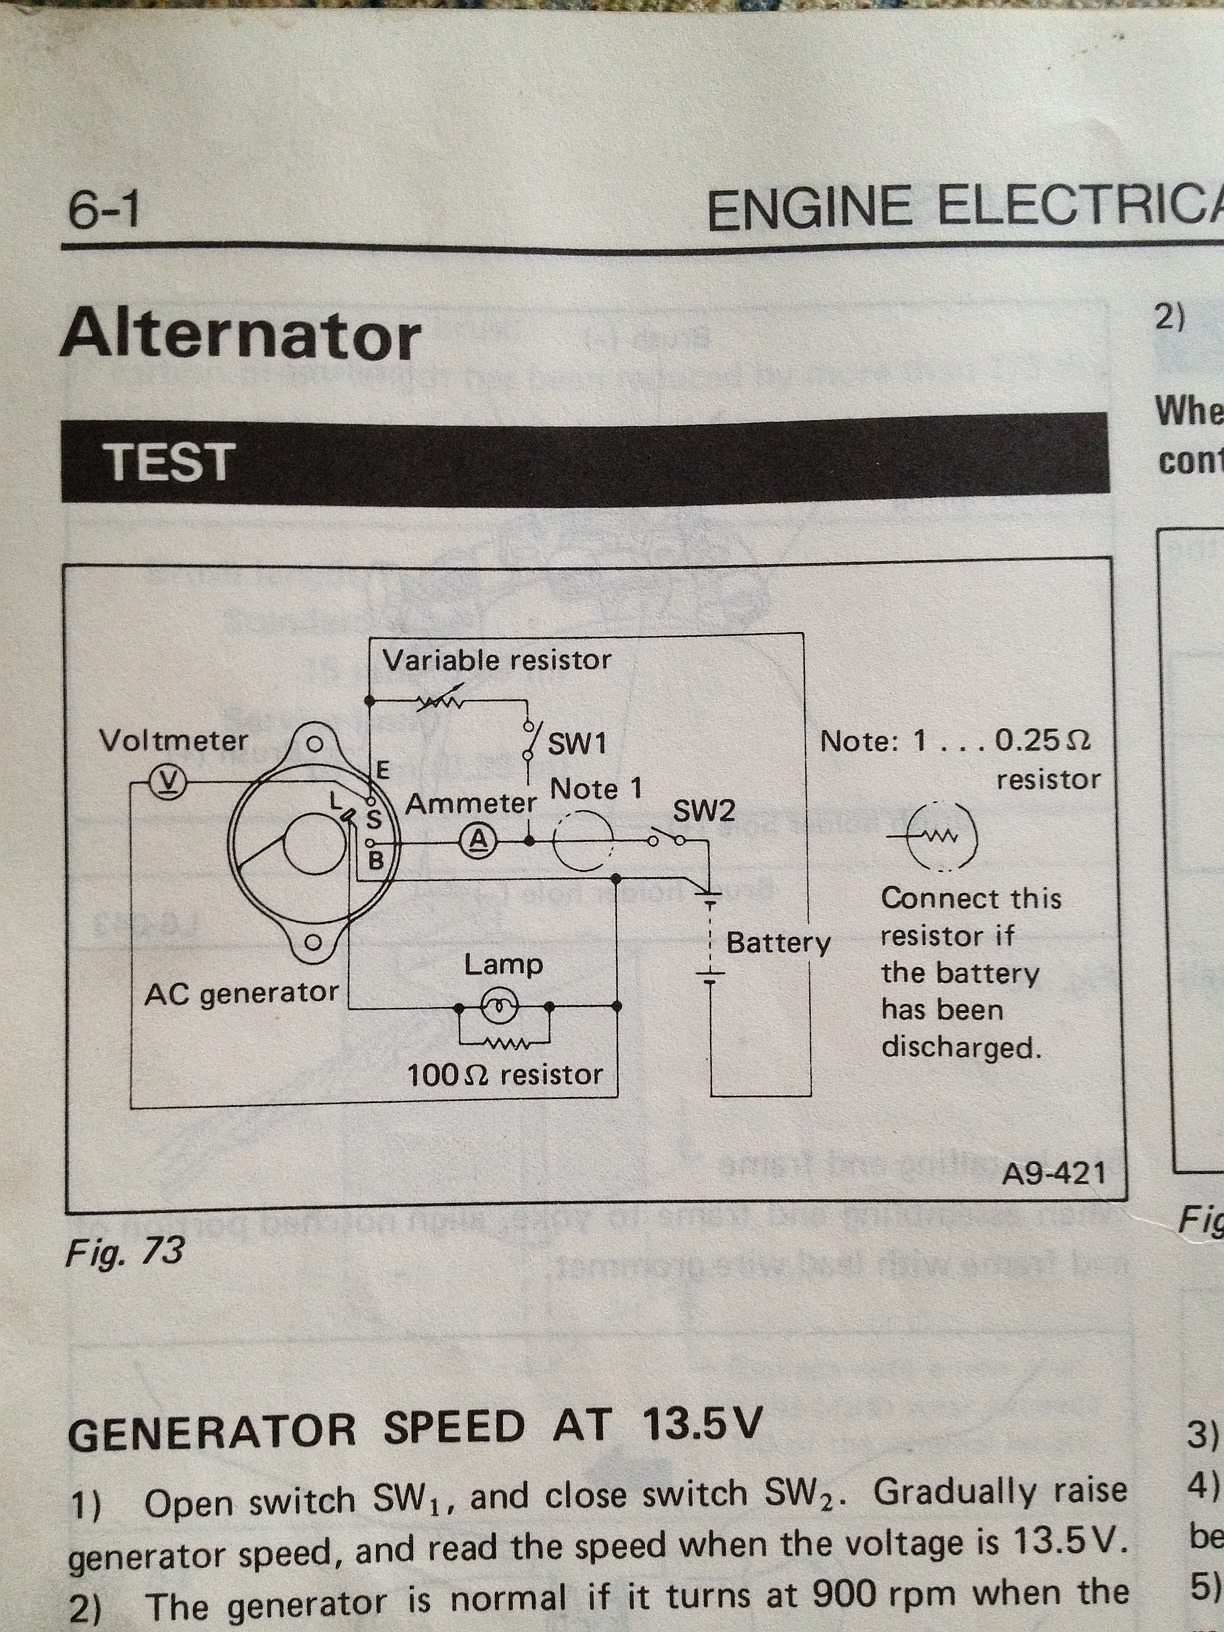 Subaru Alternator Wiring Data Diagram Chevrolet 1985 Gl Wagon Old Gen 80s Gm